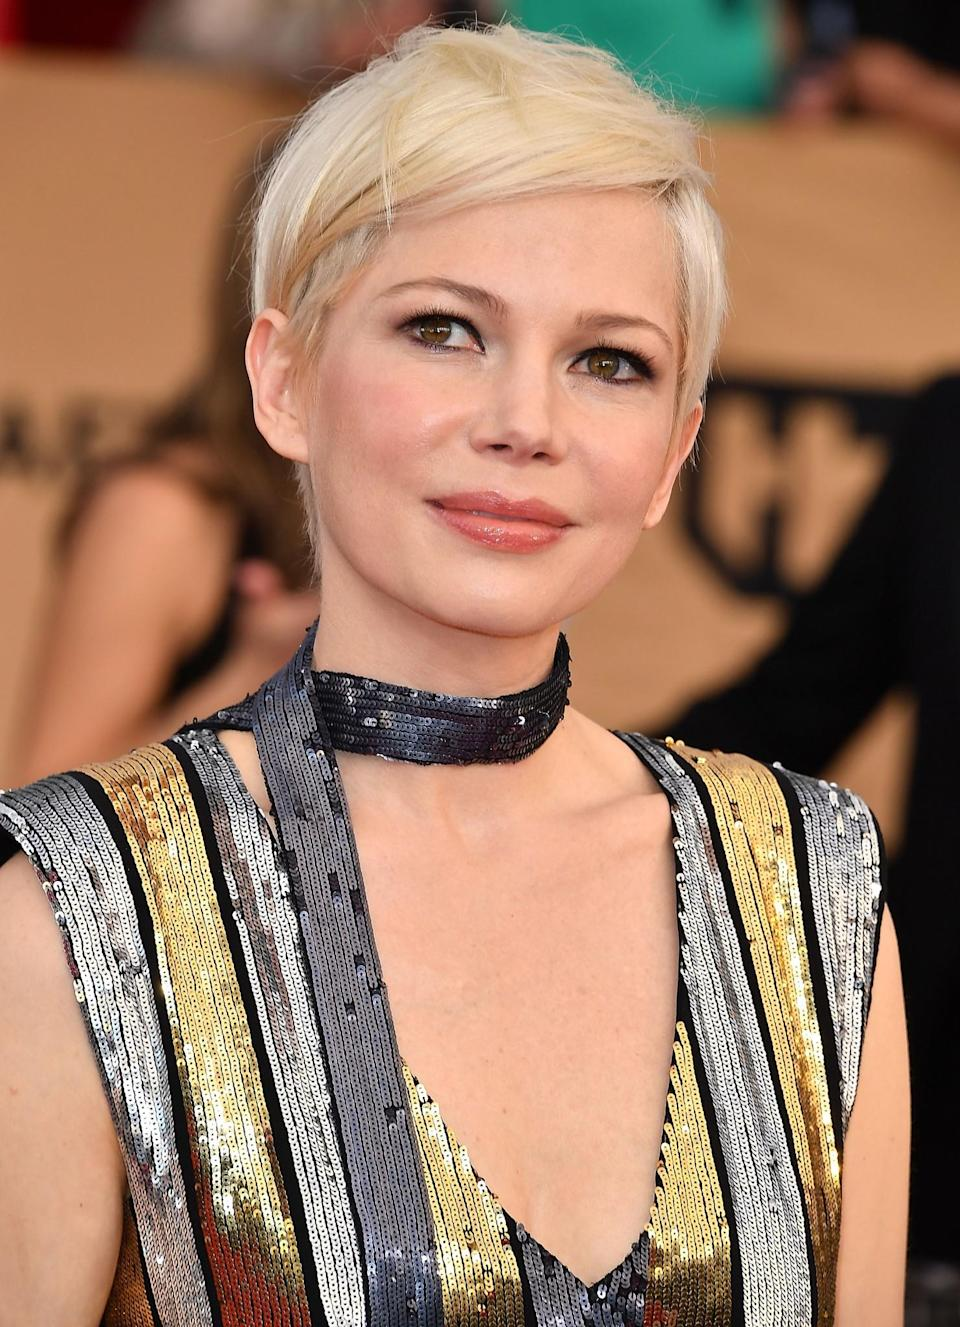 <p>Michelle Williams looked absolutely stunning with her perfectly styled pixie cut and just the right amount of black eyeliner. [Photo: Getty] </p>